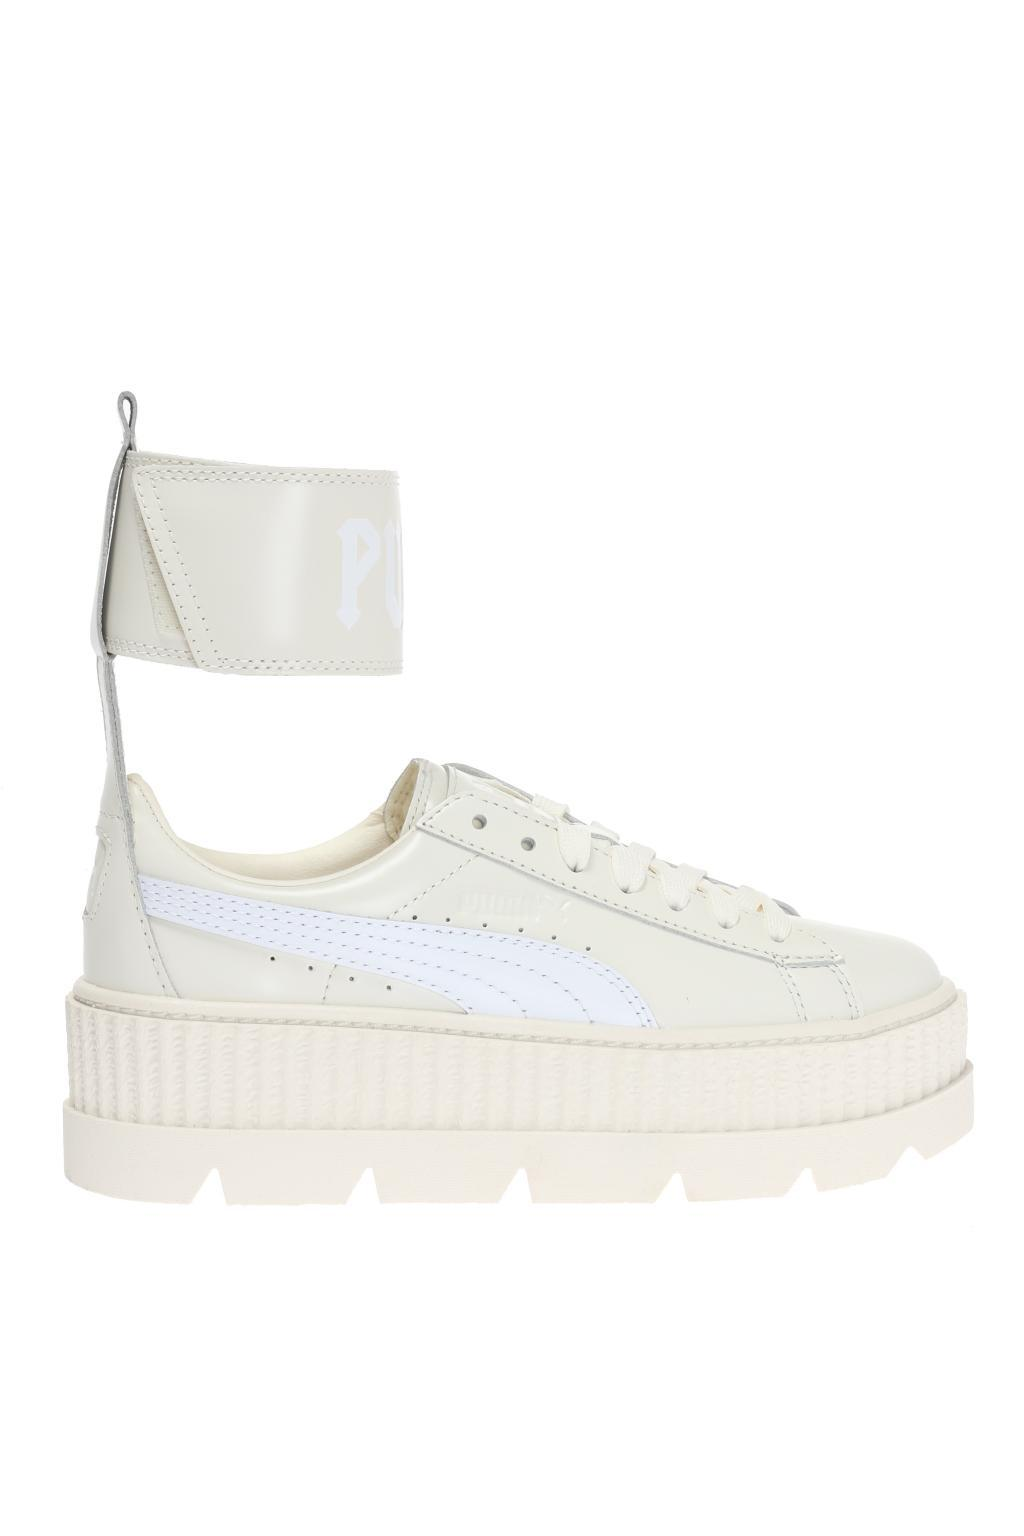 huge discount 3bcc6 28670 PUMA Platform Sneakers in White - Lyst